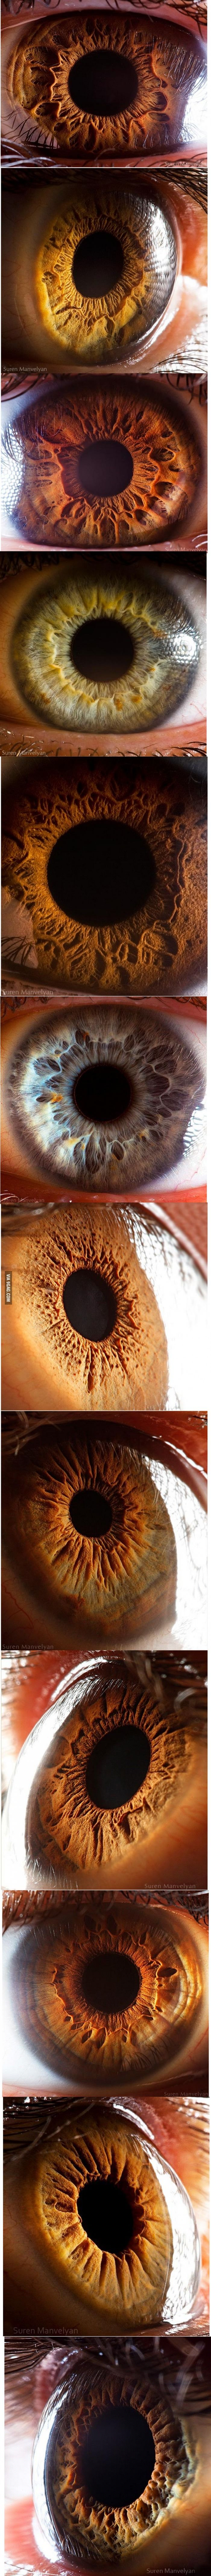 Beautiful and scary at the same time. Mezmerising close-up photos of the human eye.